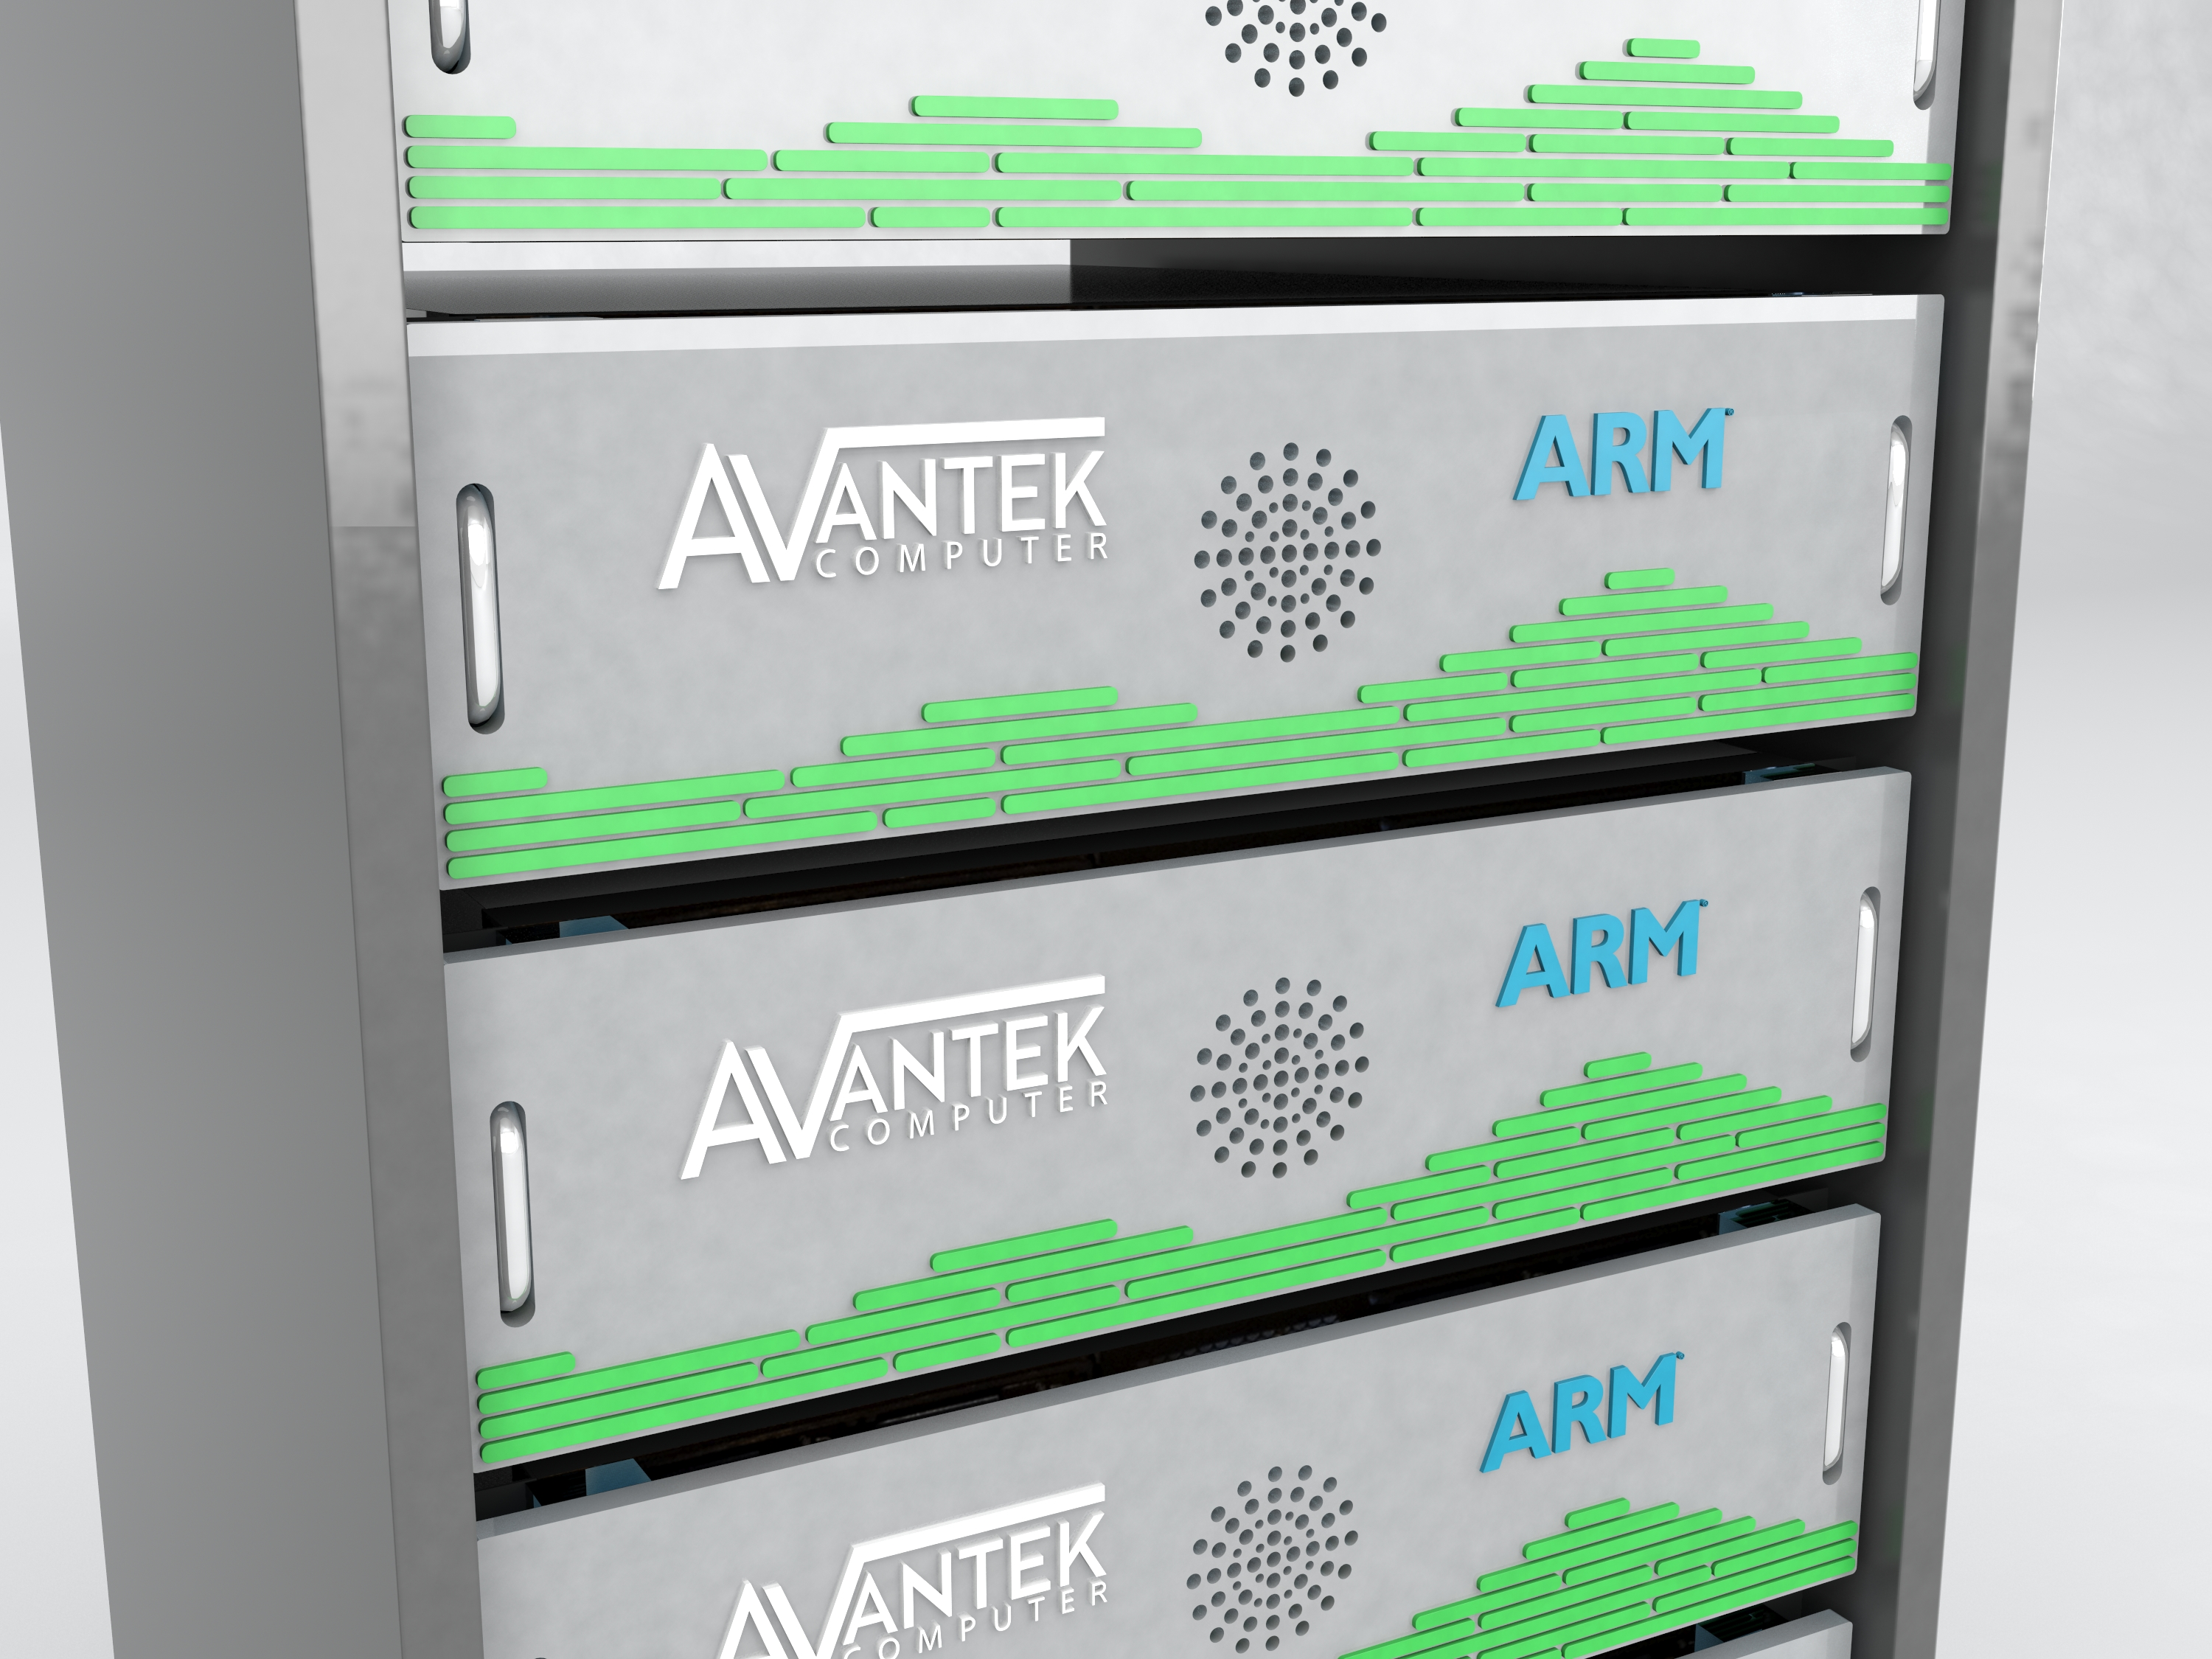 Avantek ARM Servers - Avantek Computer Limited